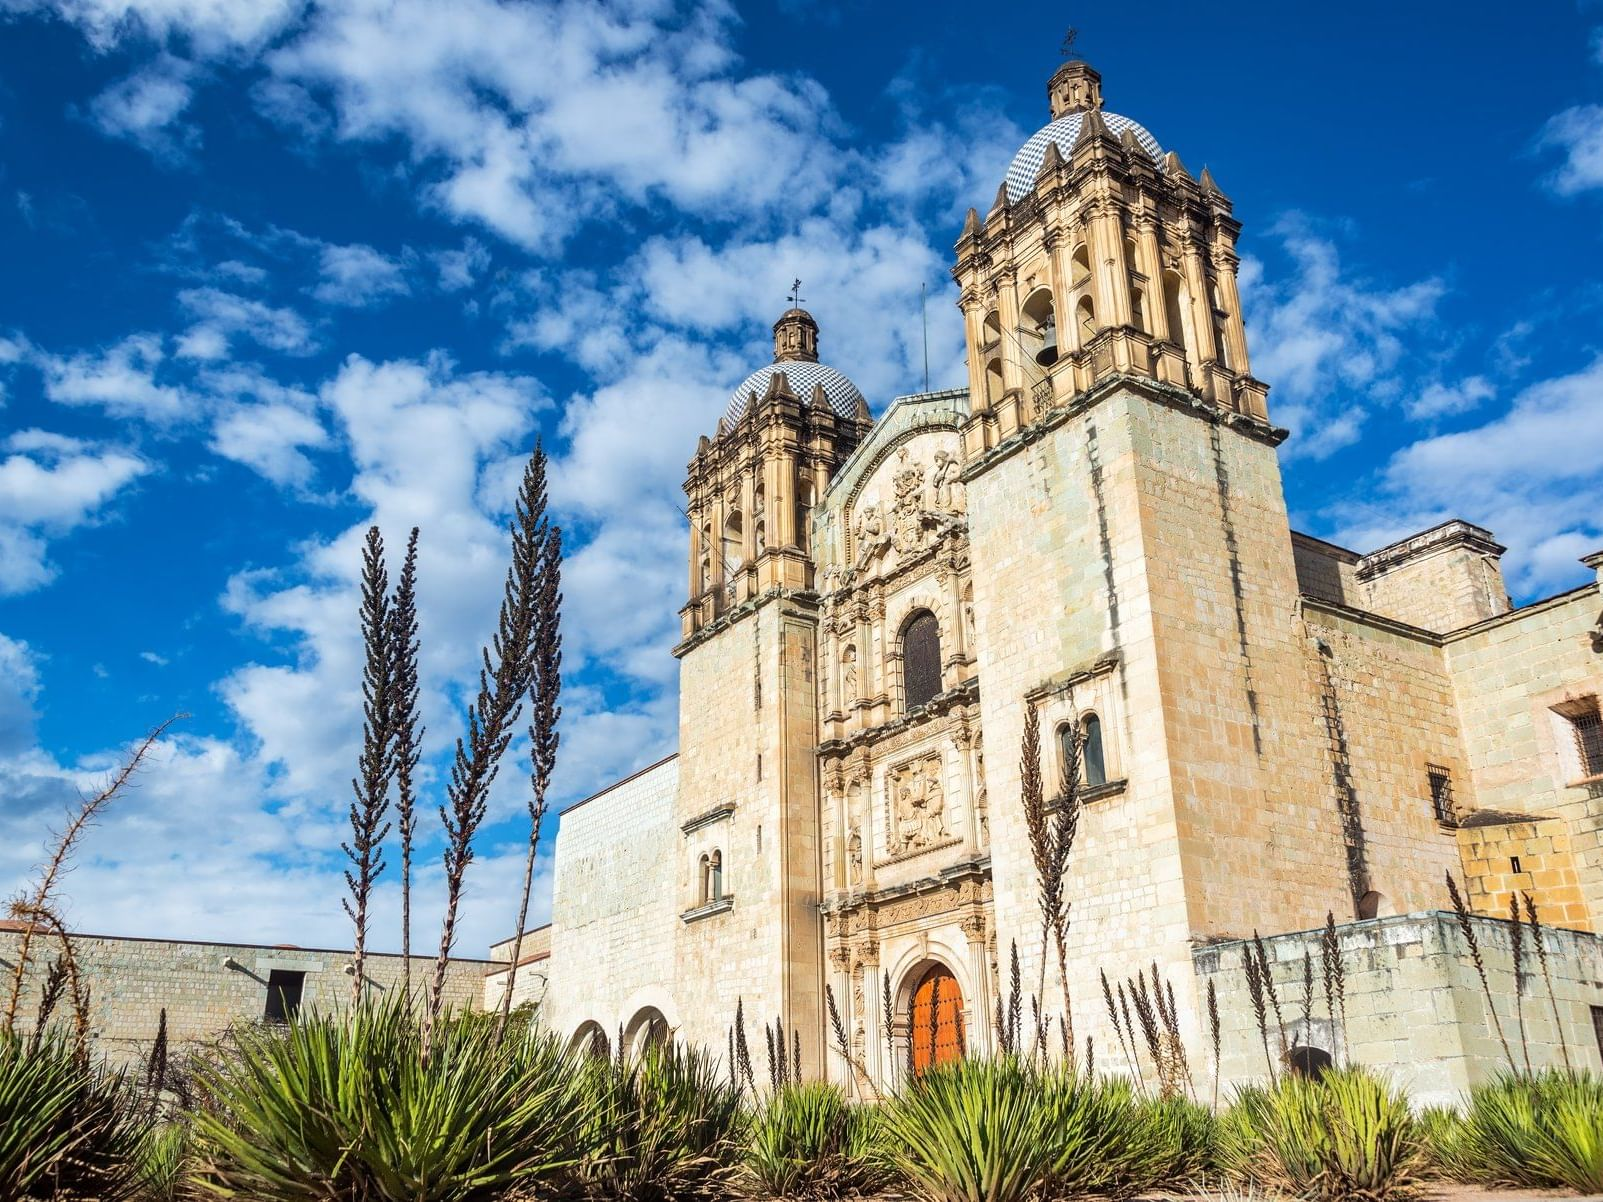 Ancient cathedral in Oaxaca city in Mexico